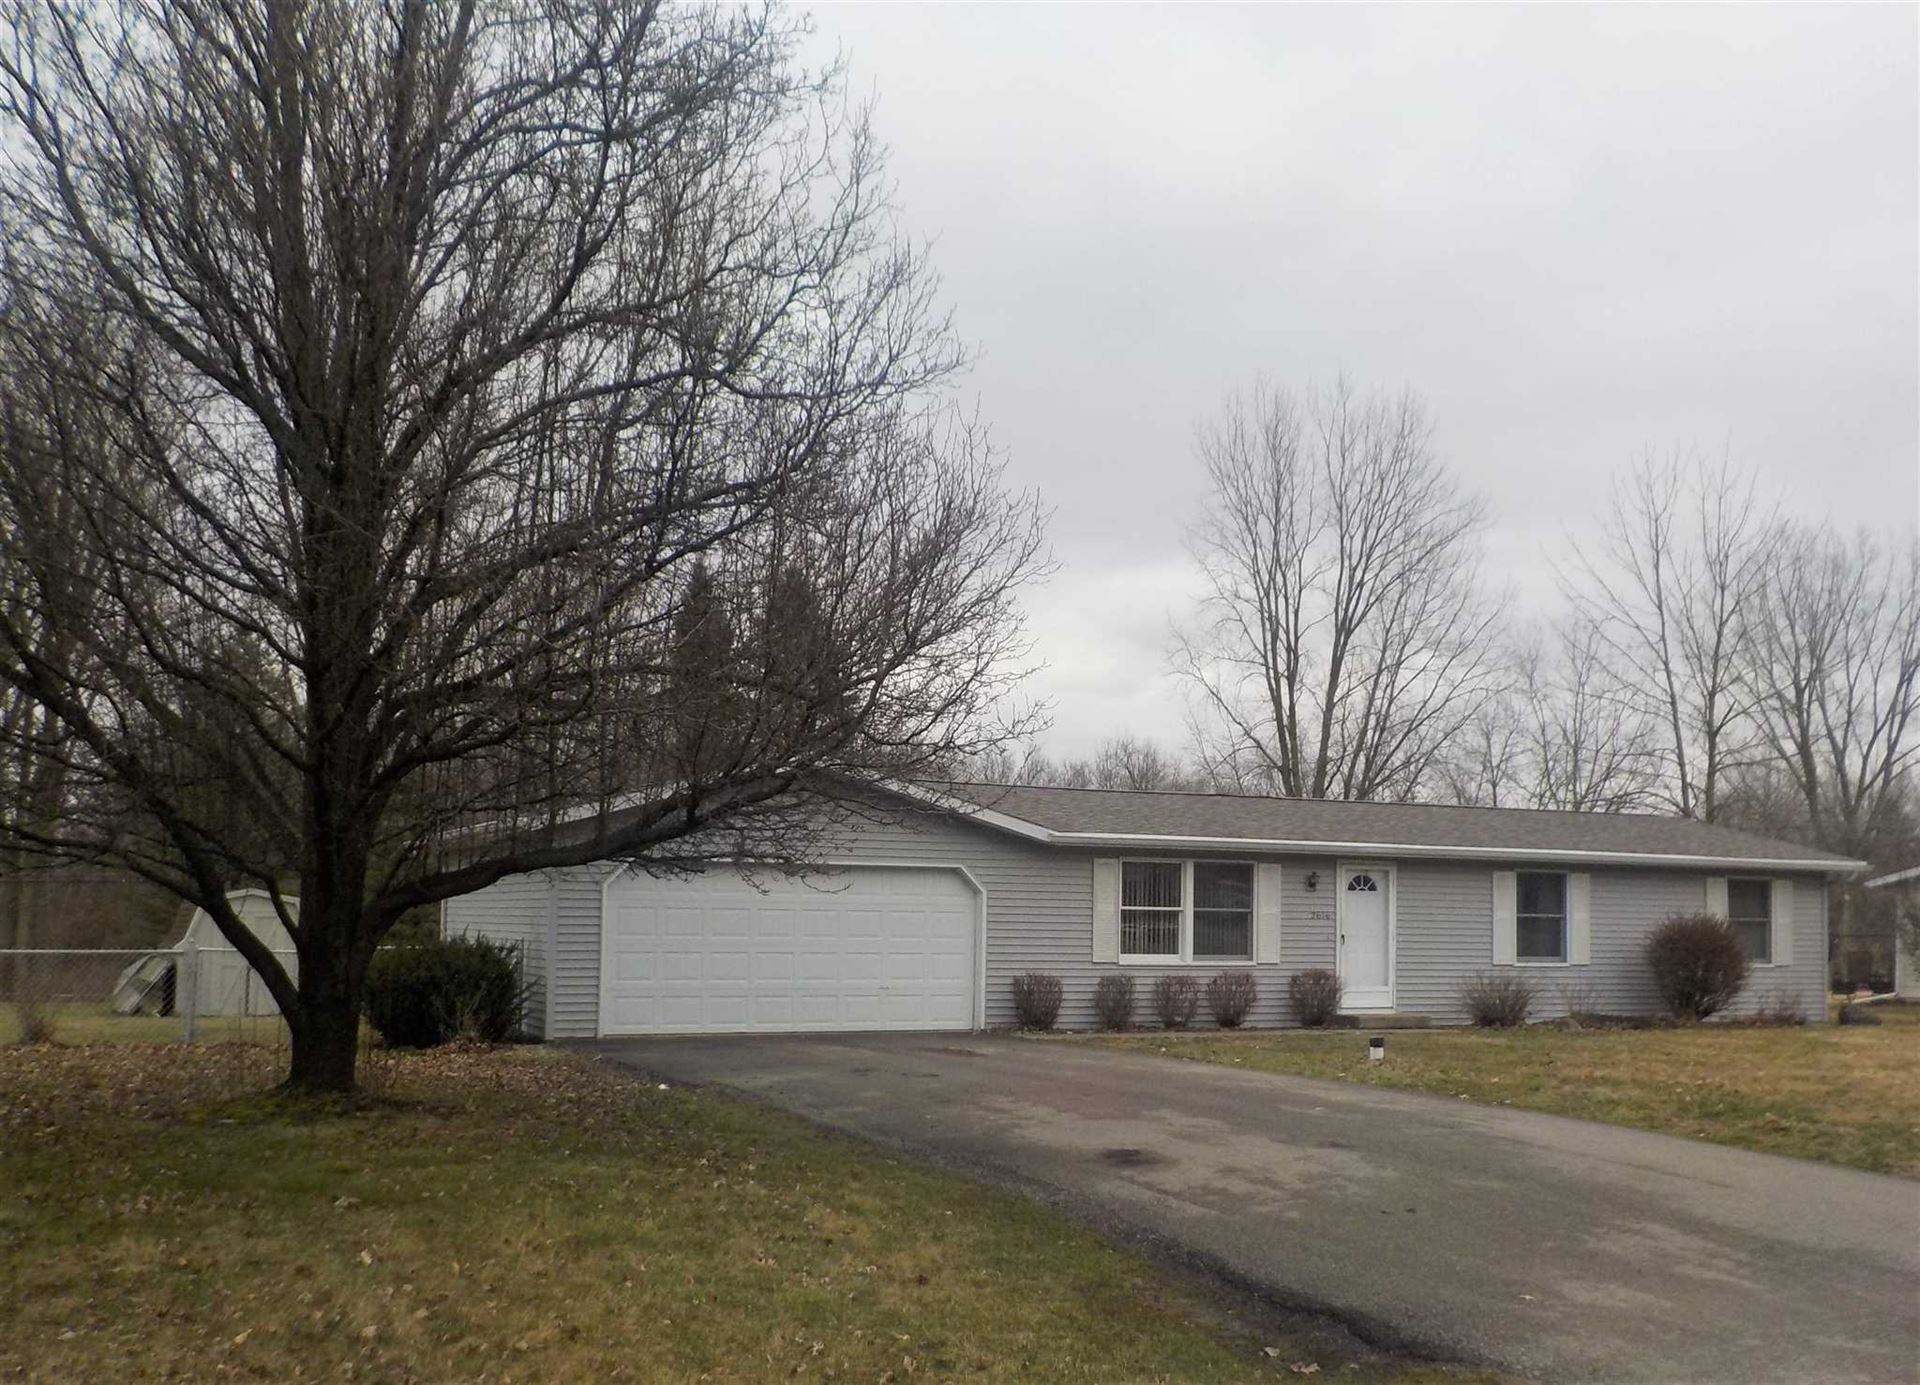 Photo of 2616 E Robby Drive, Warsaw, IN 46580 (MLS # 202010116)